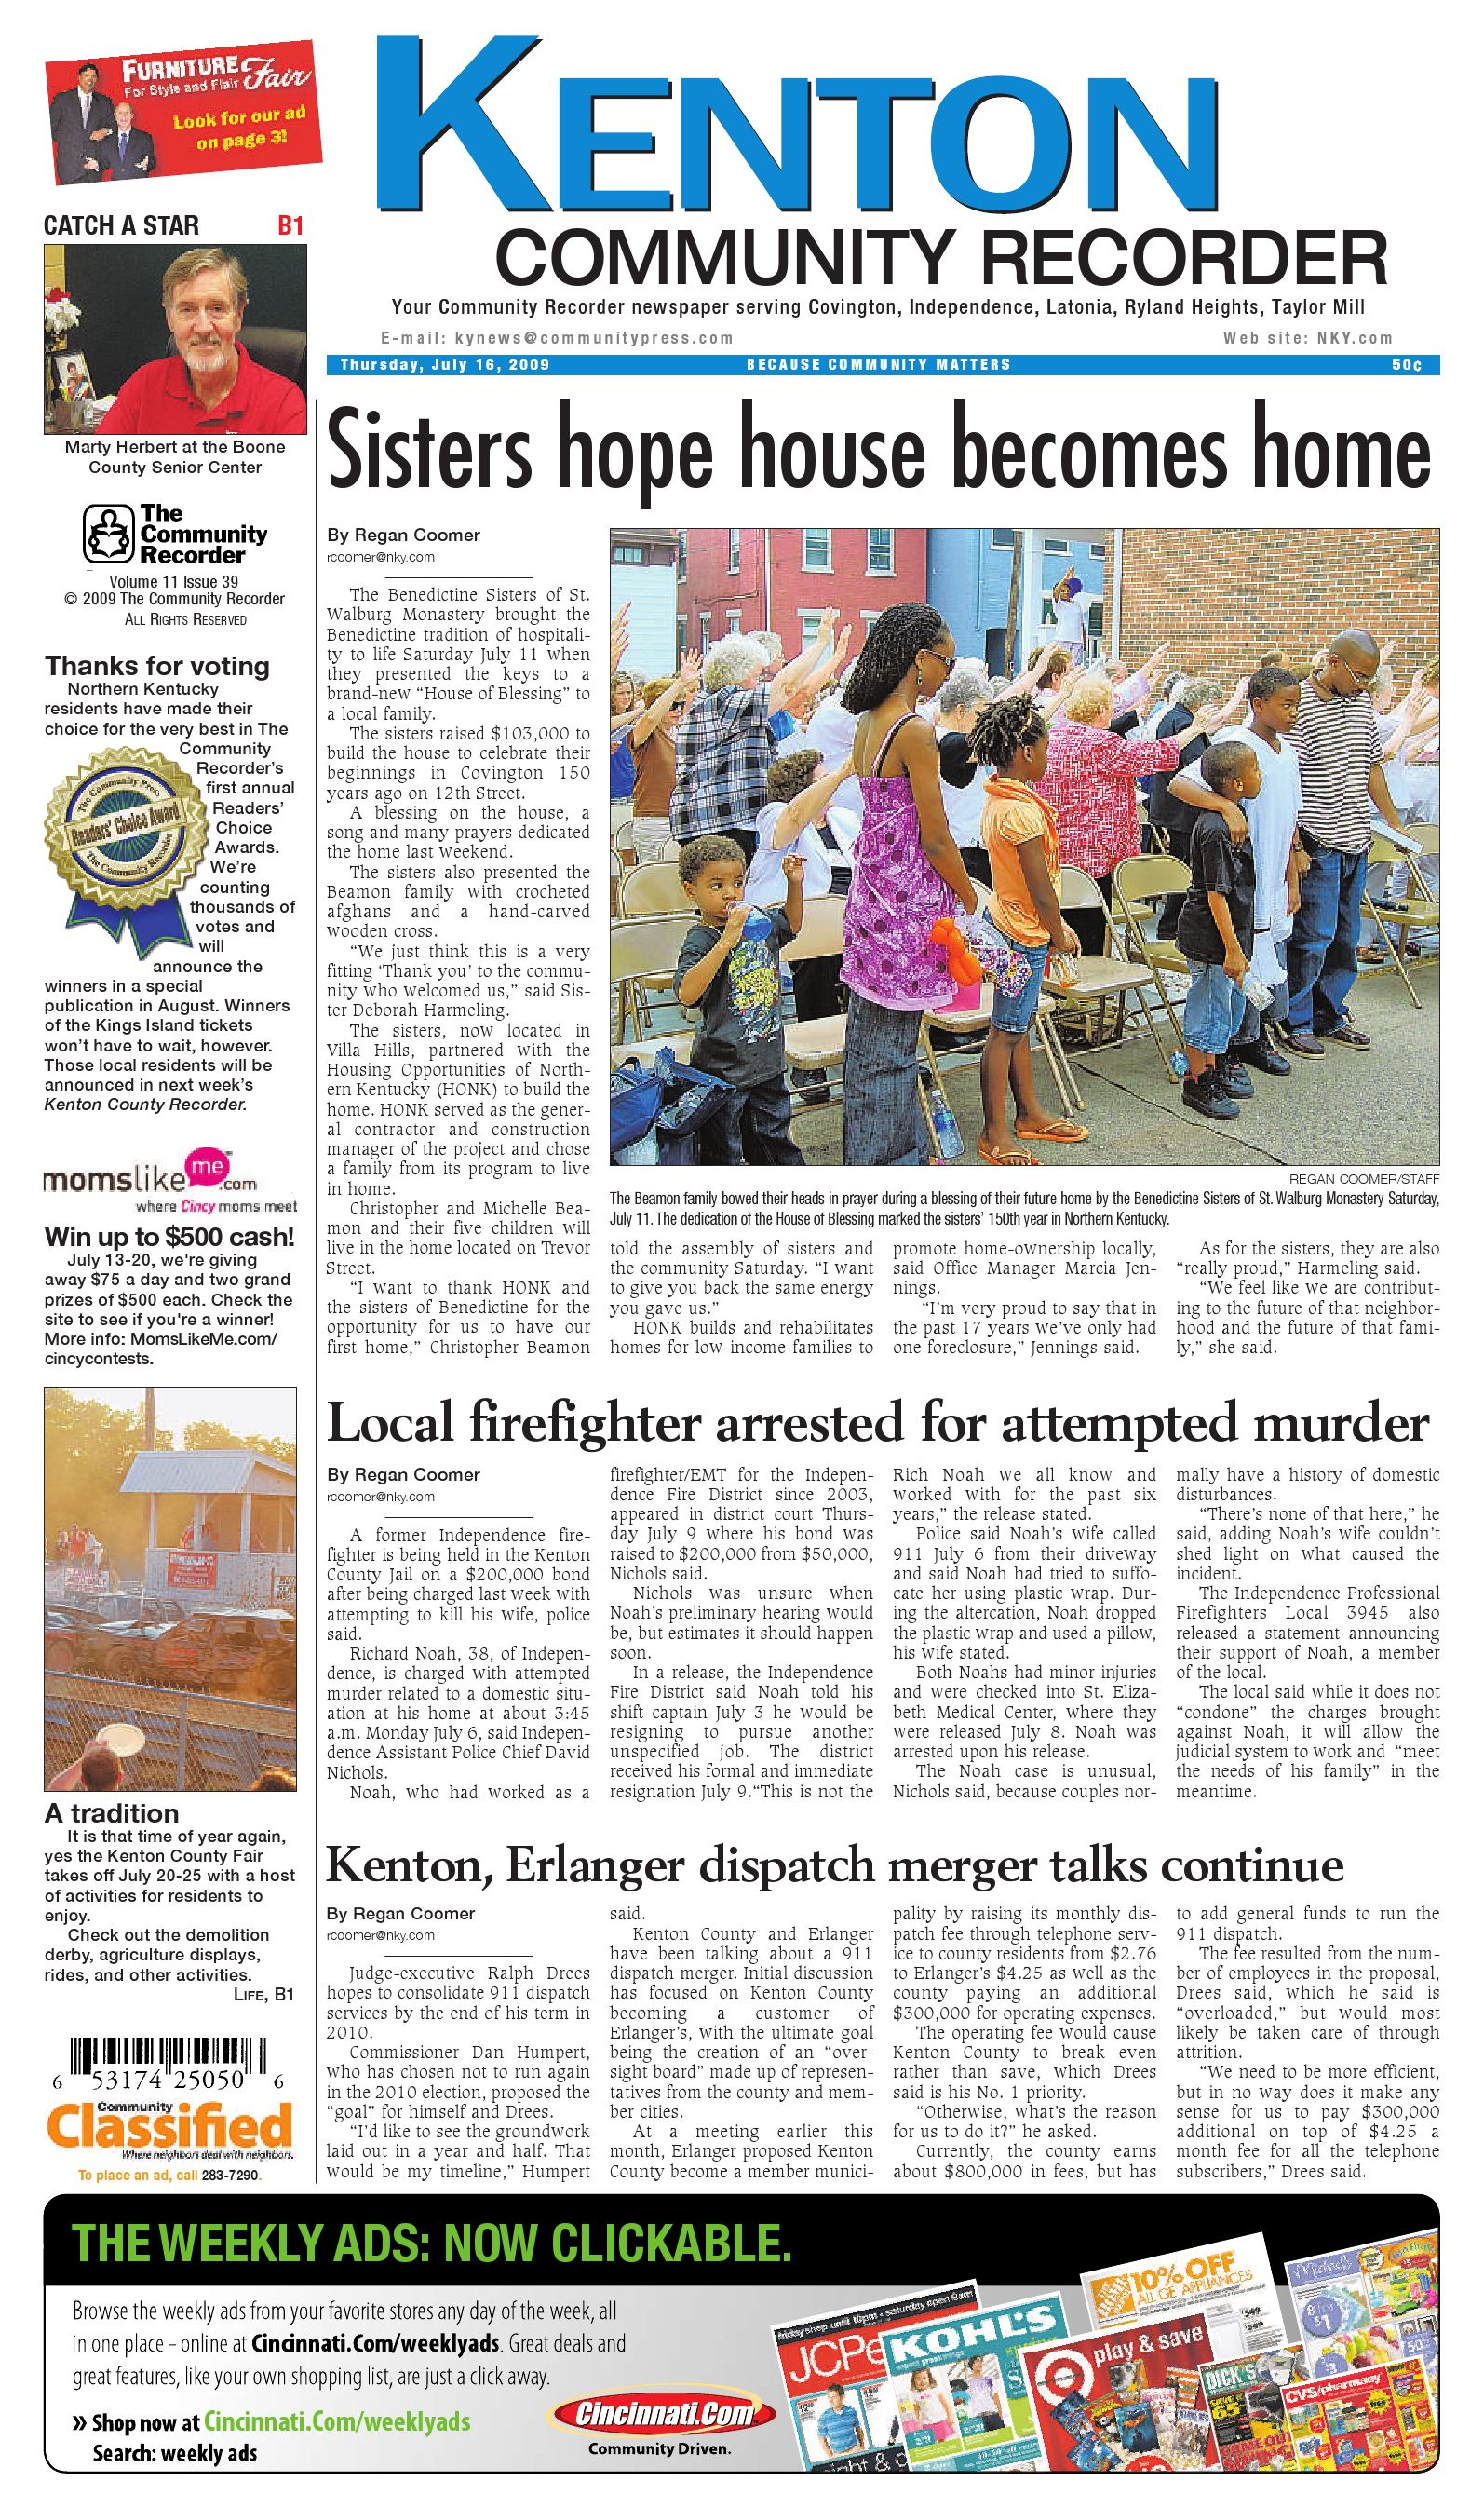 38ff23216d5cc9 kenton-community-recorder-071609a by Enquirer Media - issuu